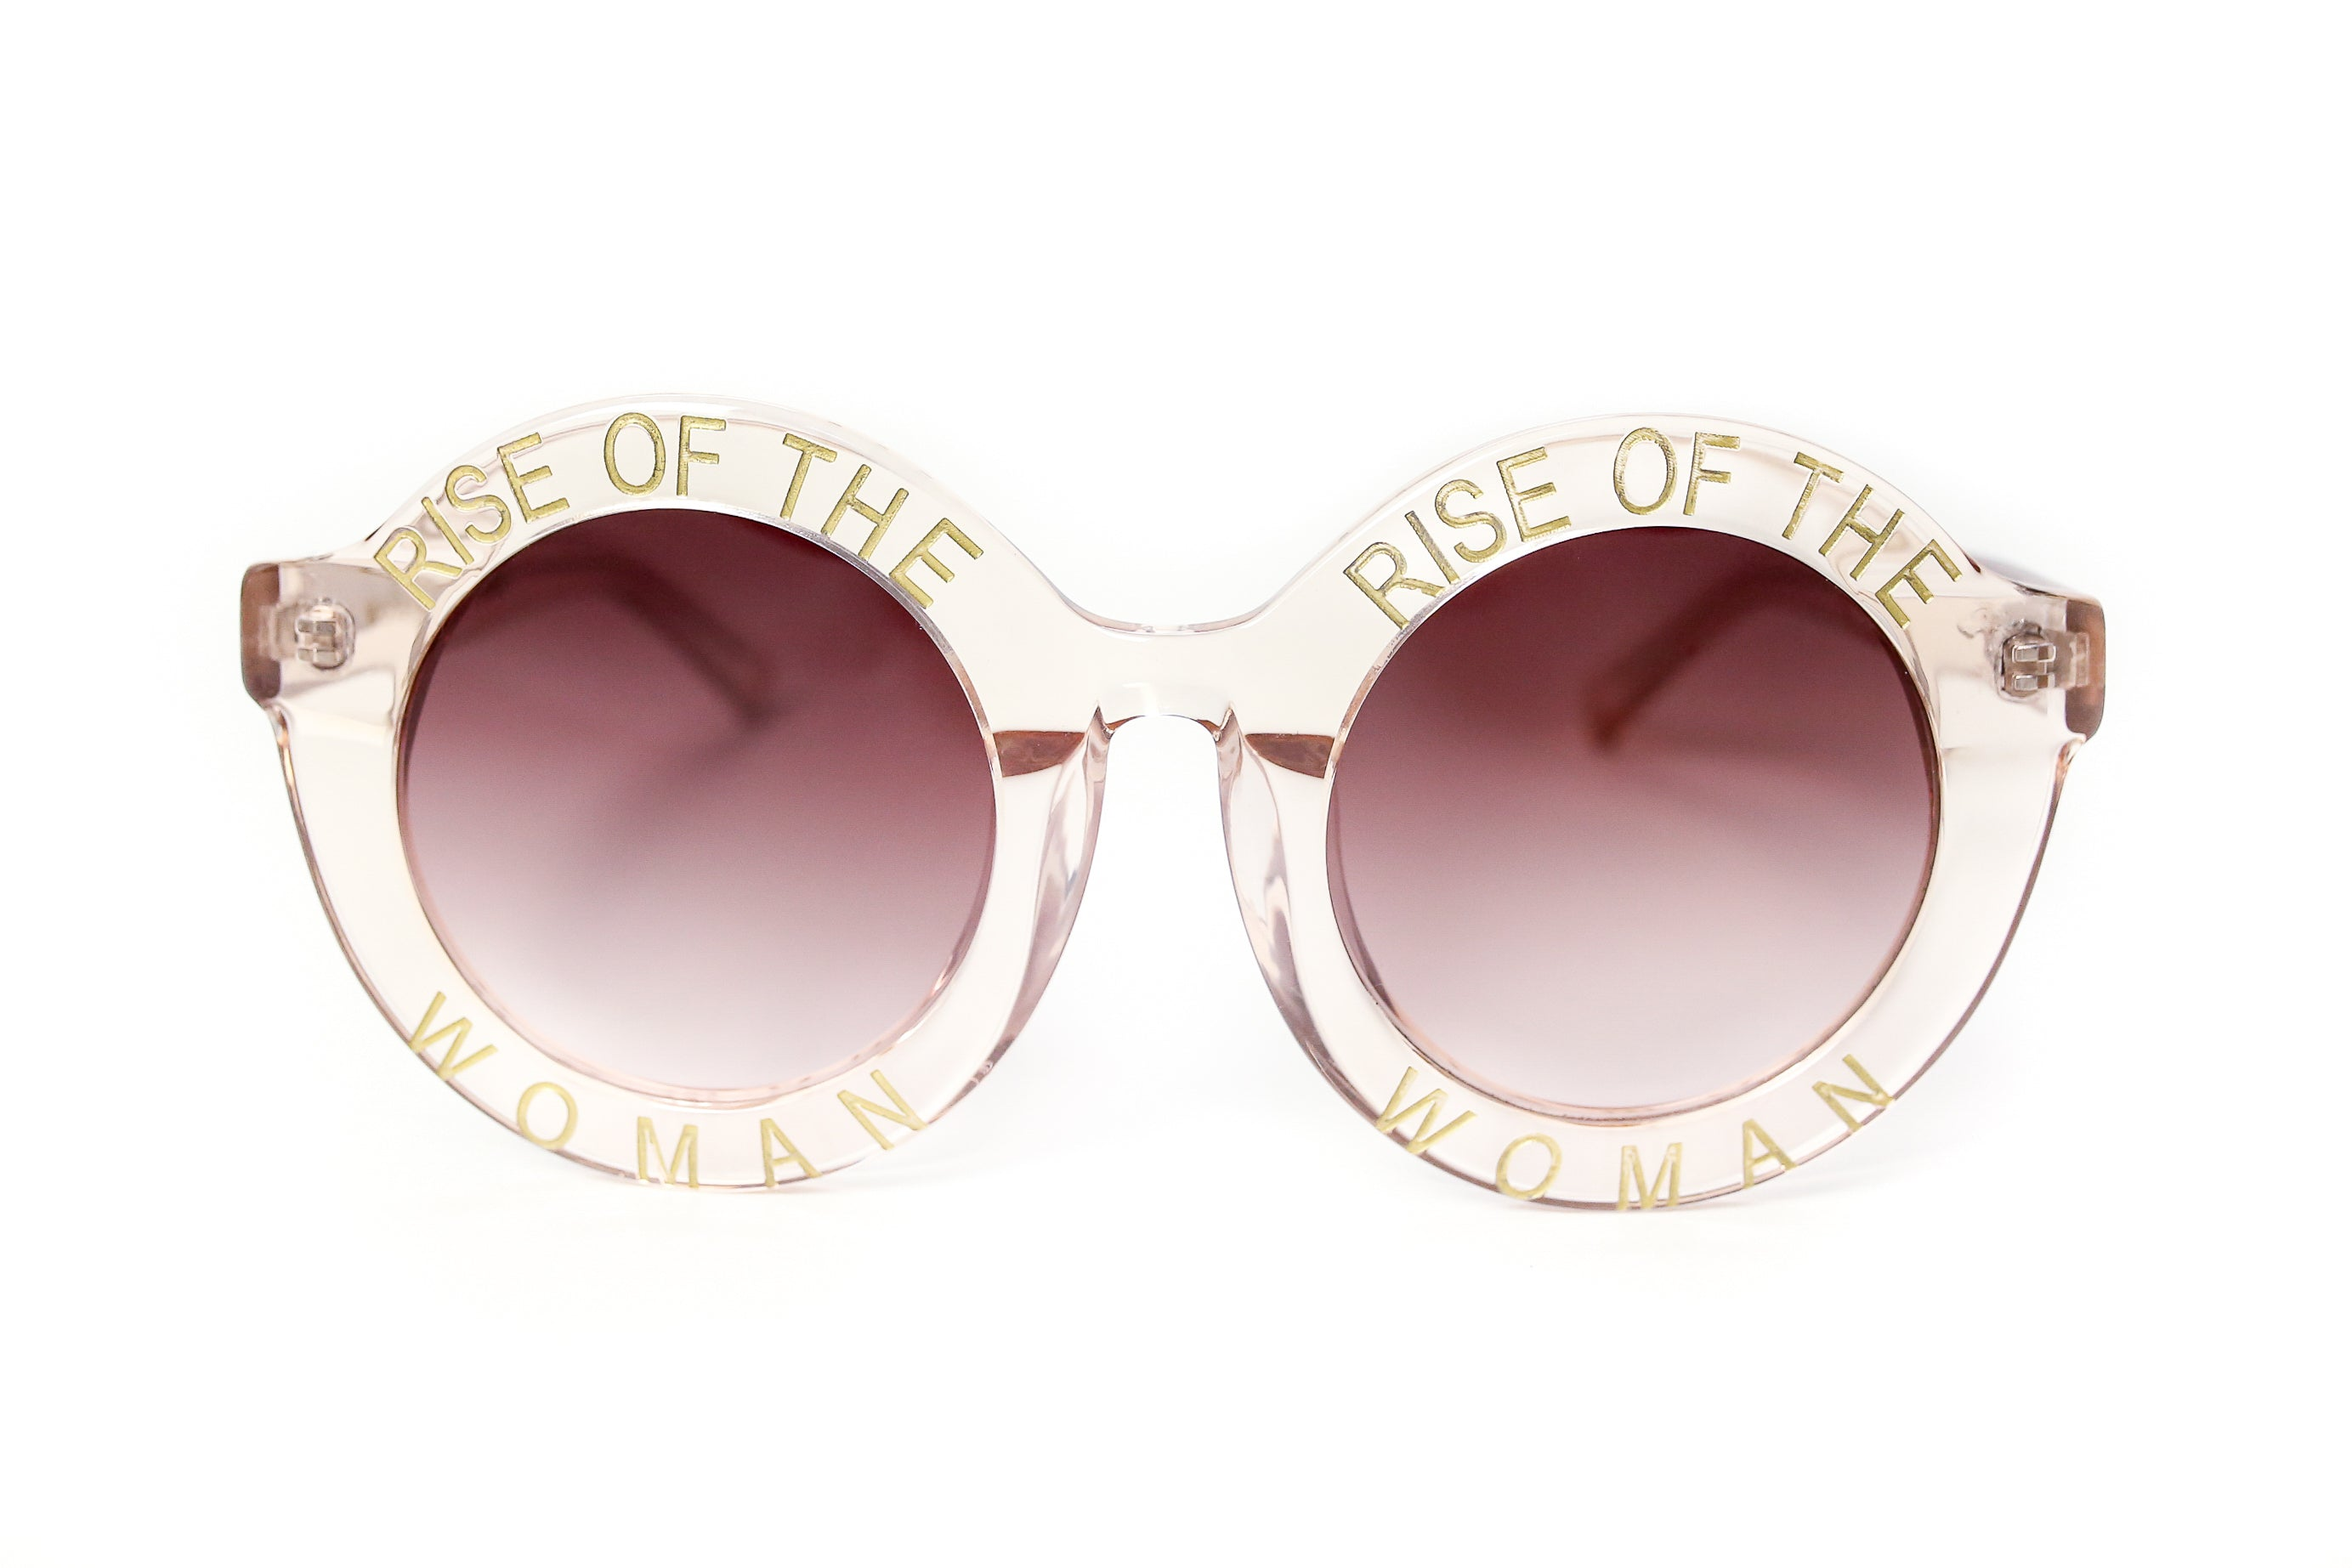 RISE OF THE WOMAN® TRANSLUCENT CHAMPAGNE AND GOLD ROUND SUNGLASSES